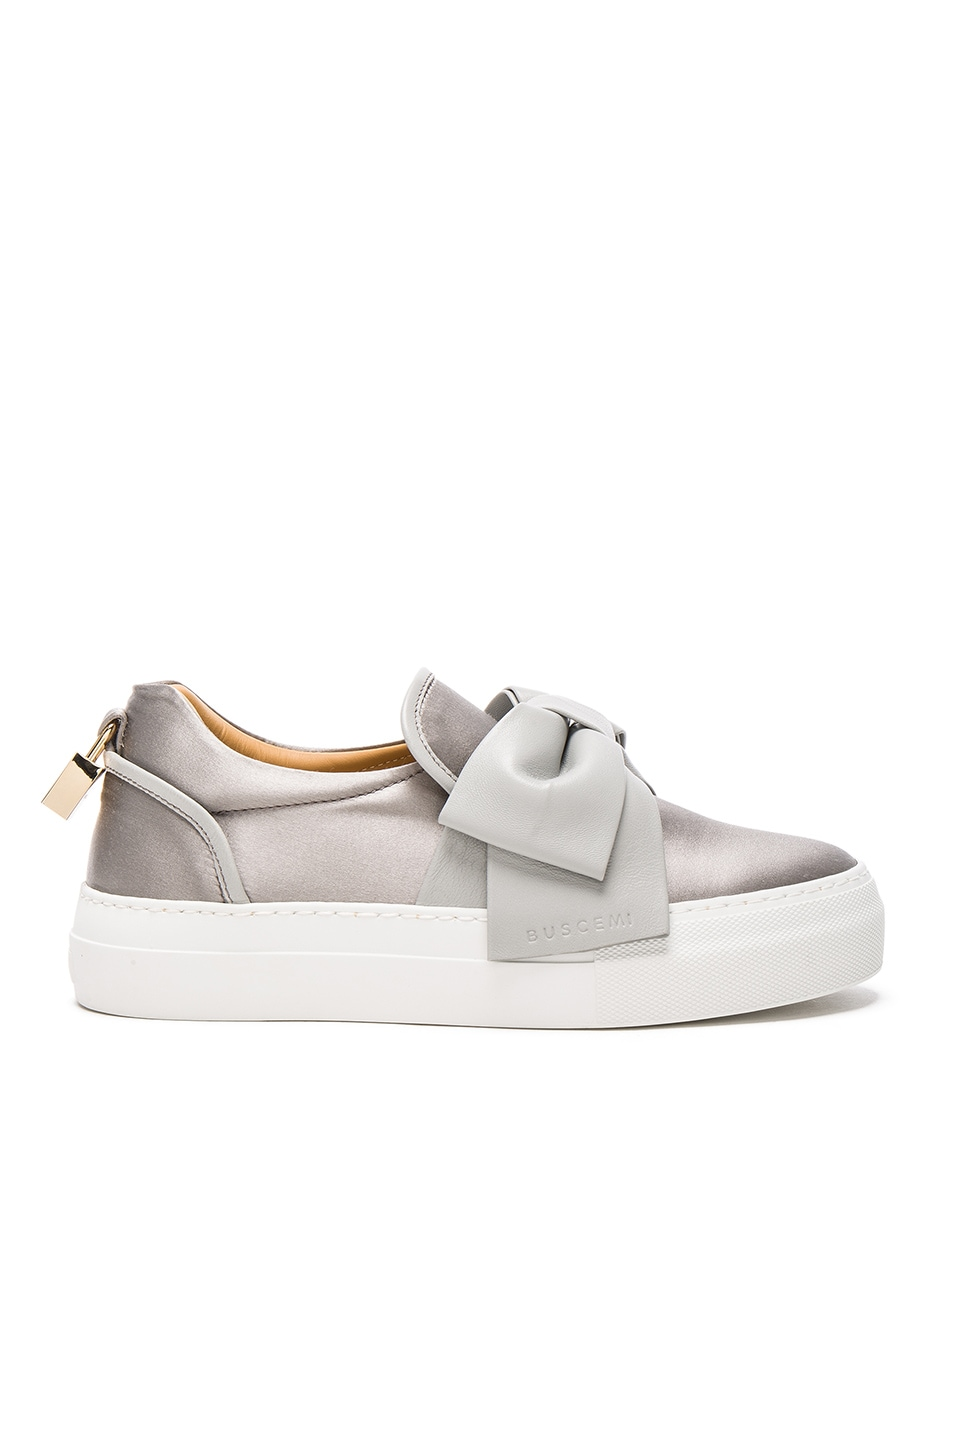 Image 1 of Buscemi 40MM Bow Satin Sneakers in Grey